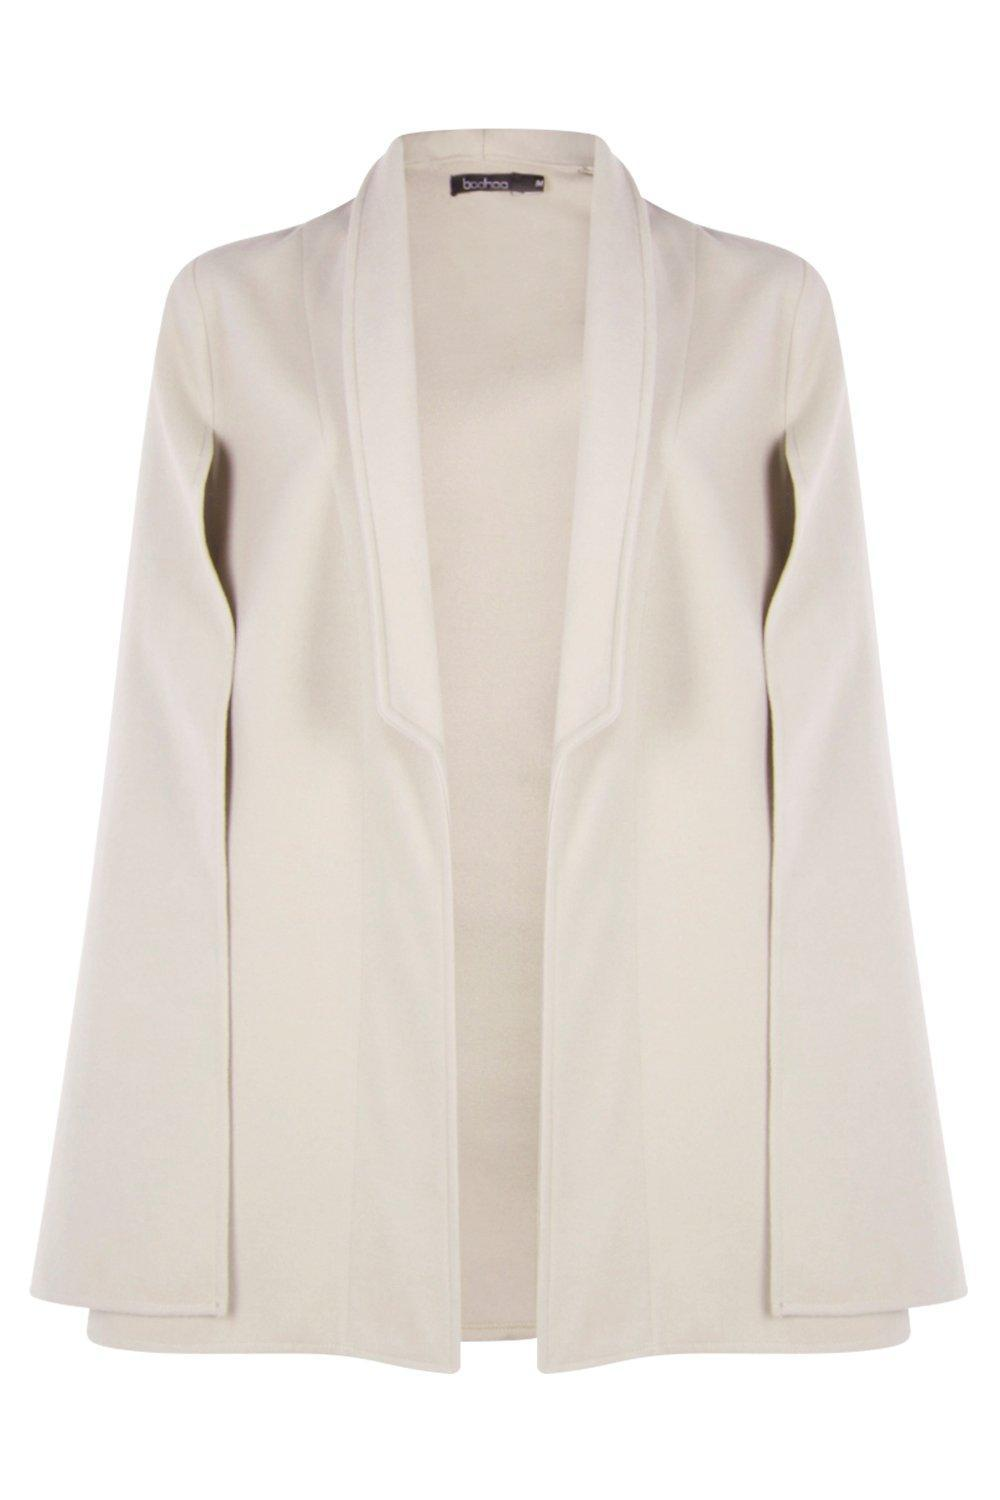 Boohoo Wool Look Cape in Stone (Natural)